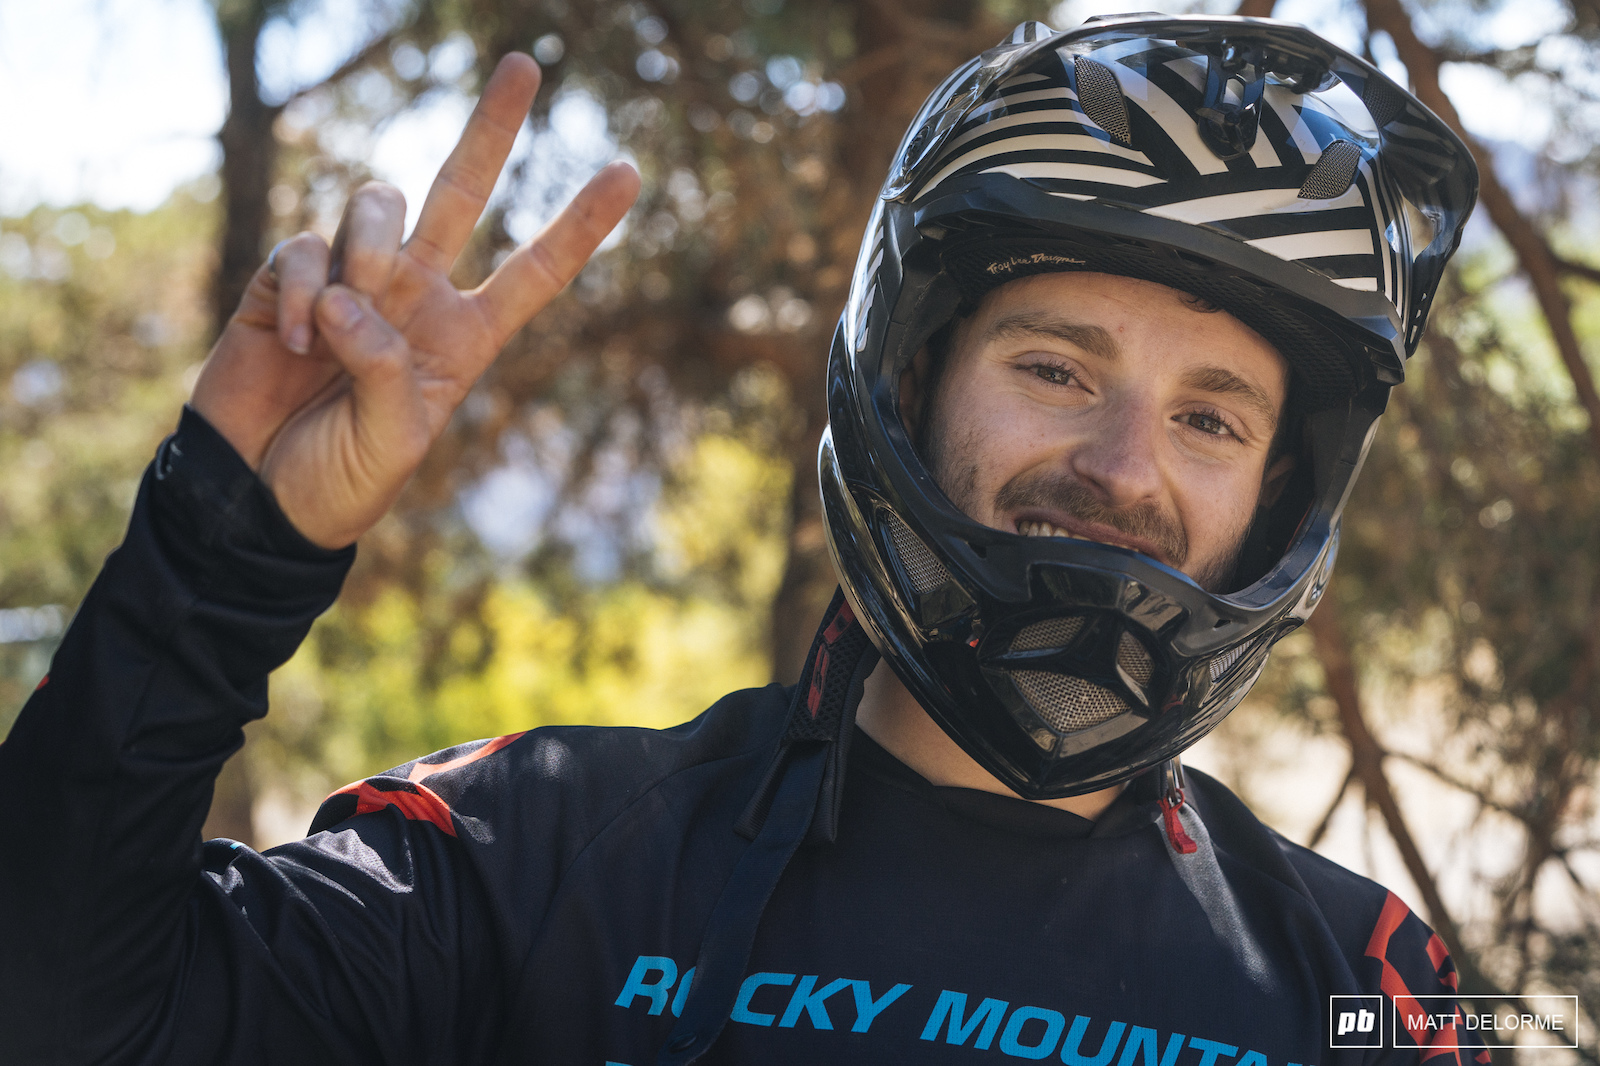 Jesse Melamed hit the deck yesterday and is riding taped up today. He might be feeling pain but he s still smiling an sits in fifth despite the injury.